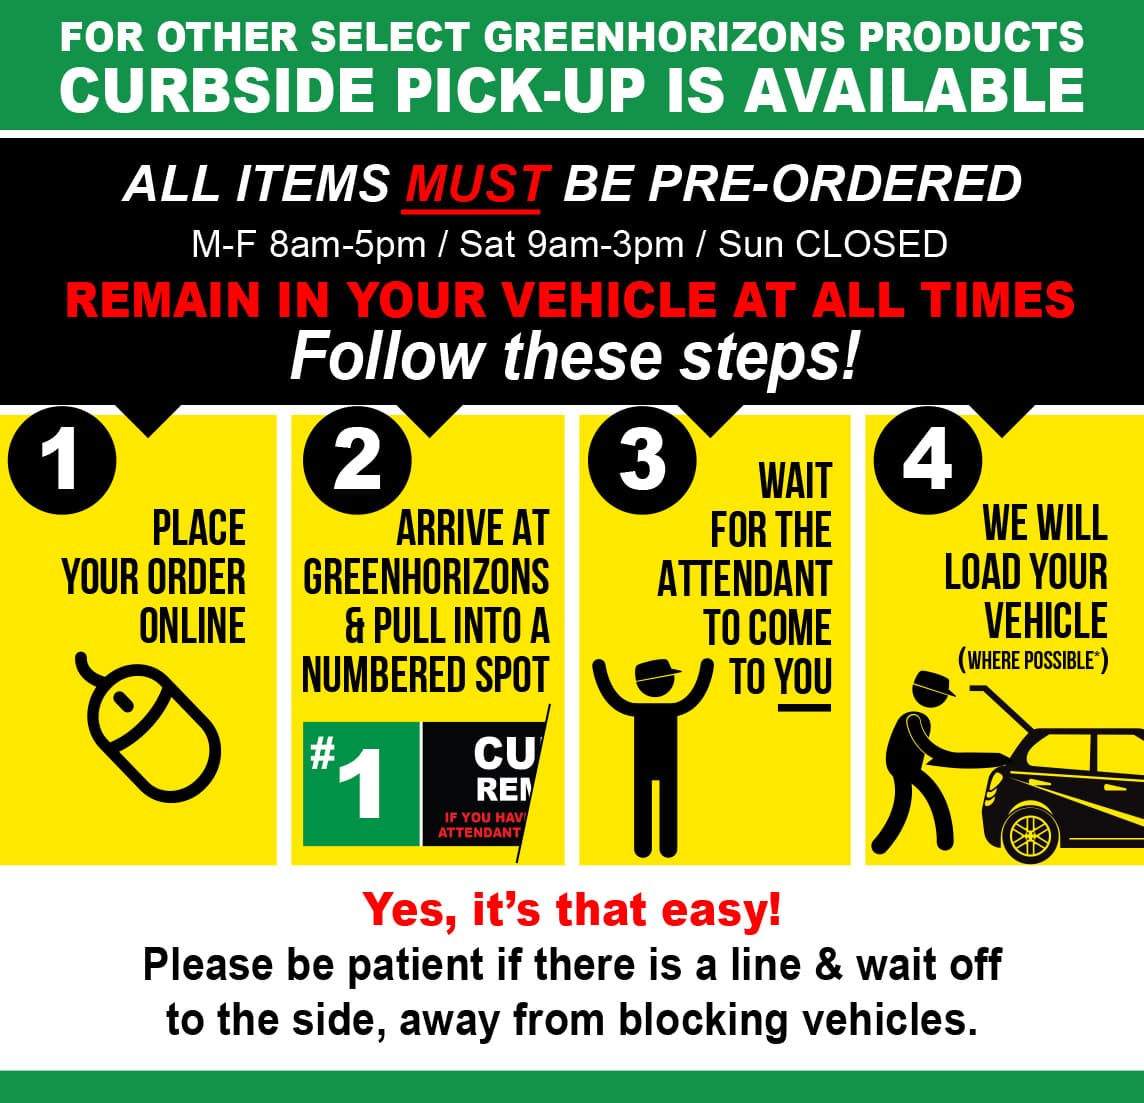 Download pictures to view. CURBSIDE INFORMATION IMAGE